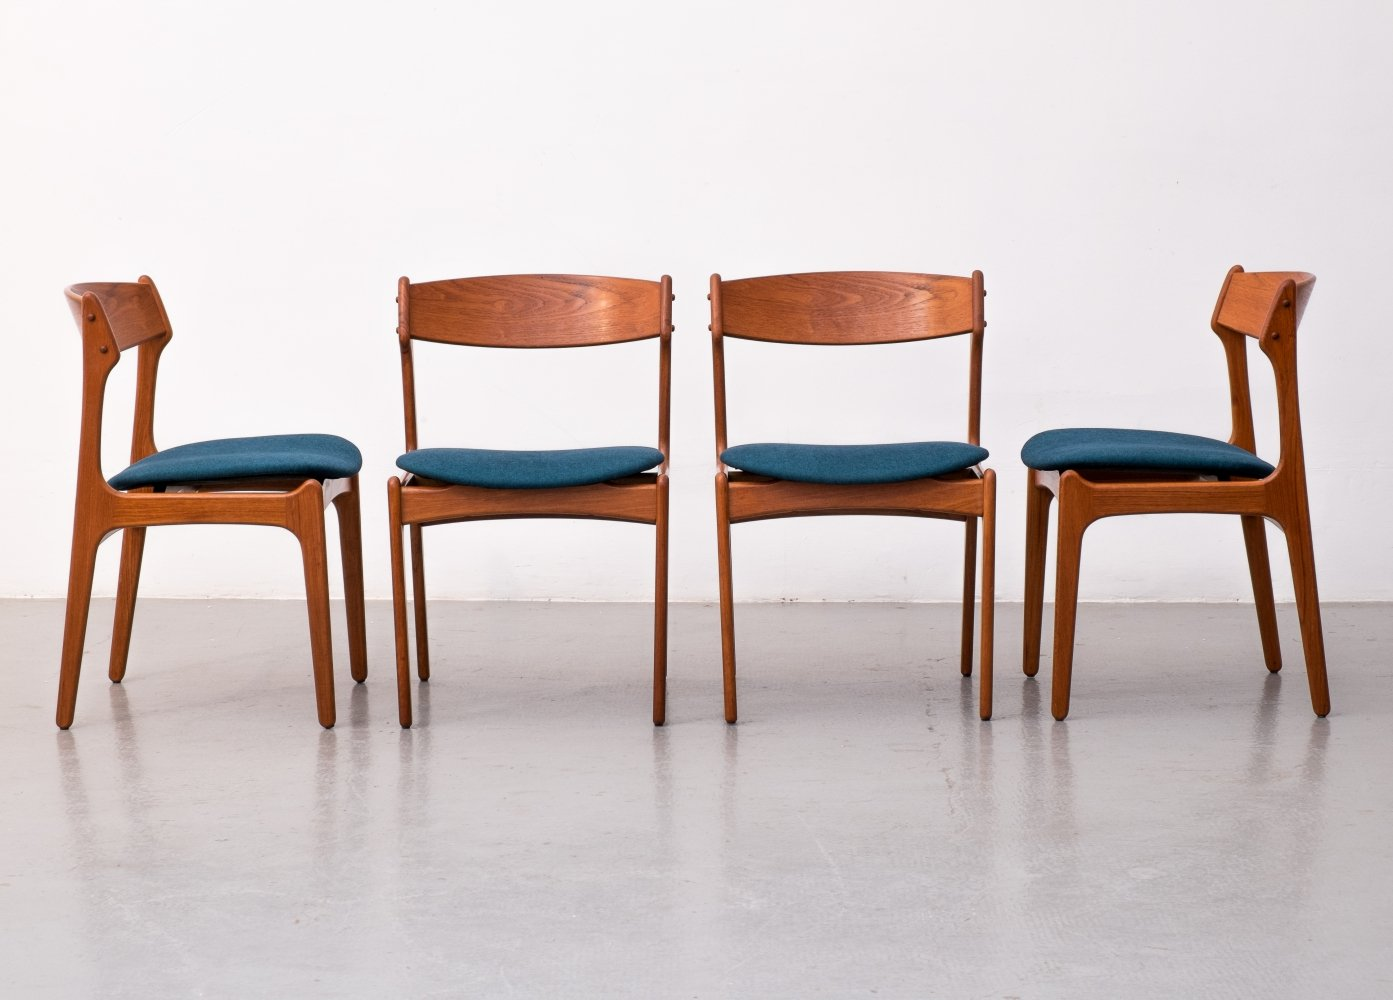 Set of 4 dining chairs by Erik Buch for O. D. Møbler, 1960s